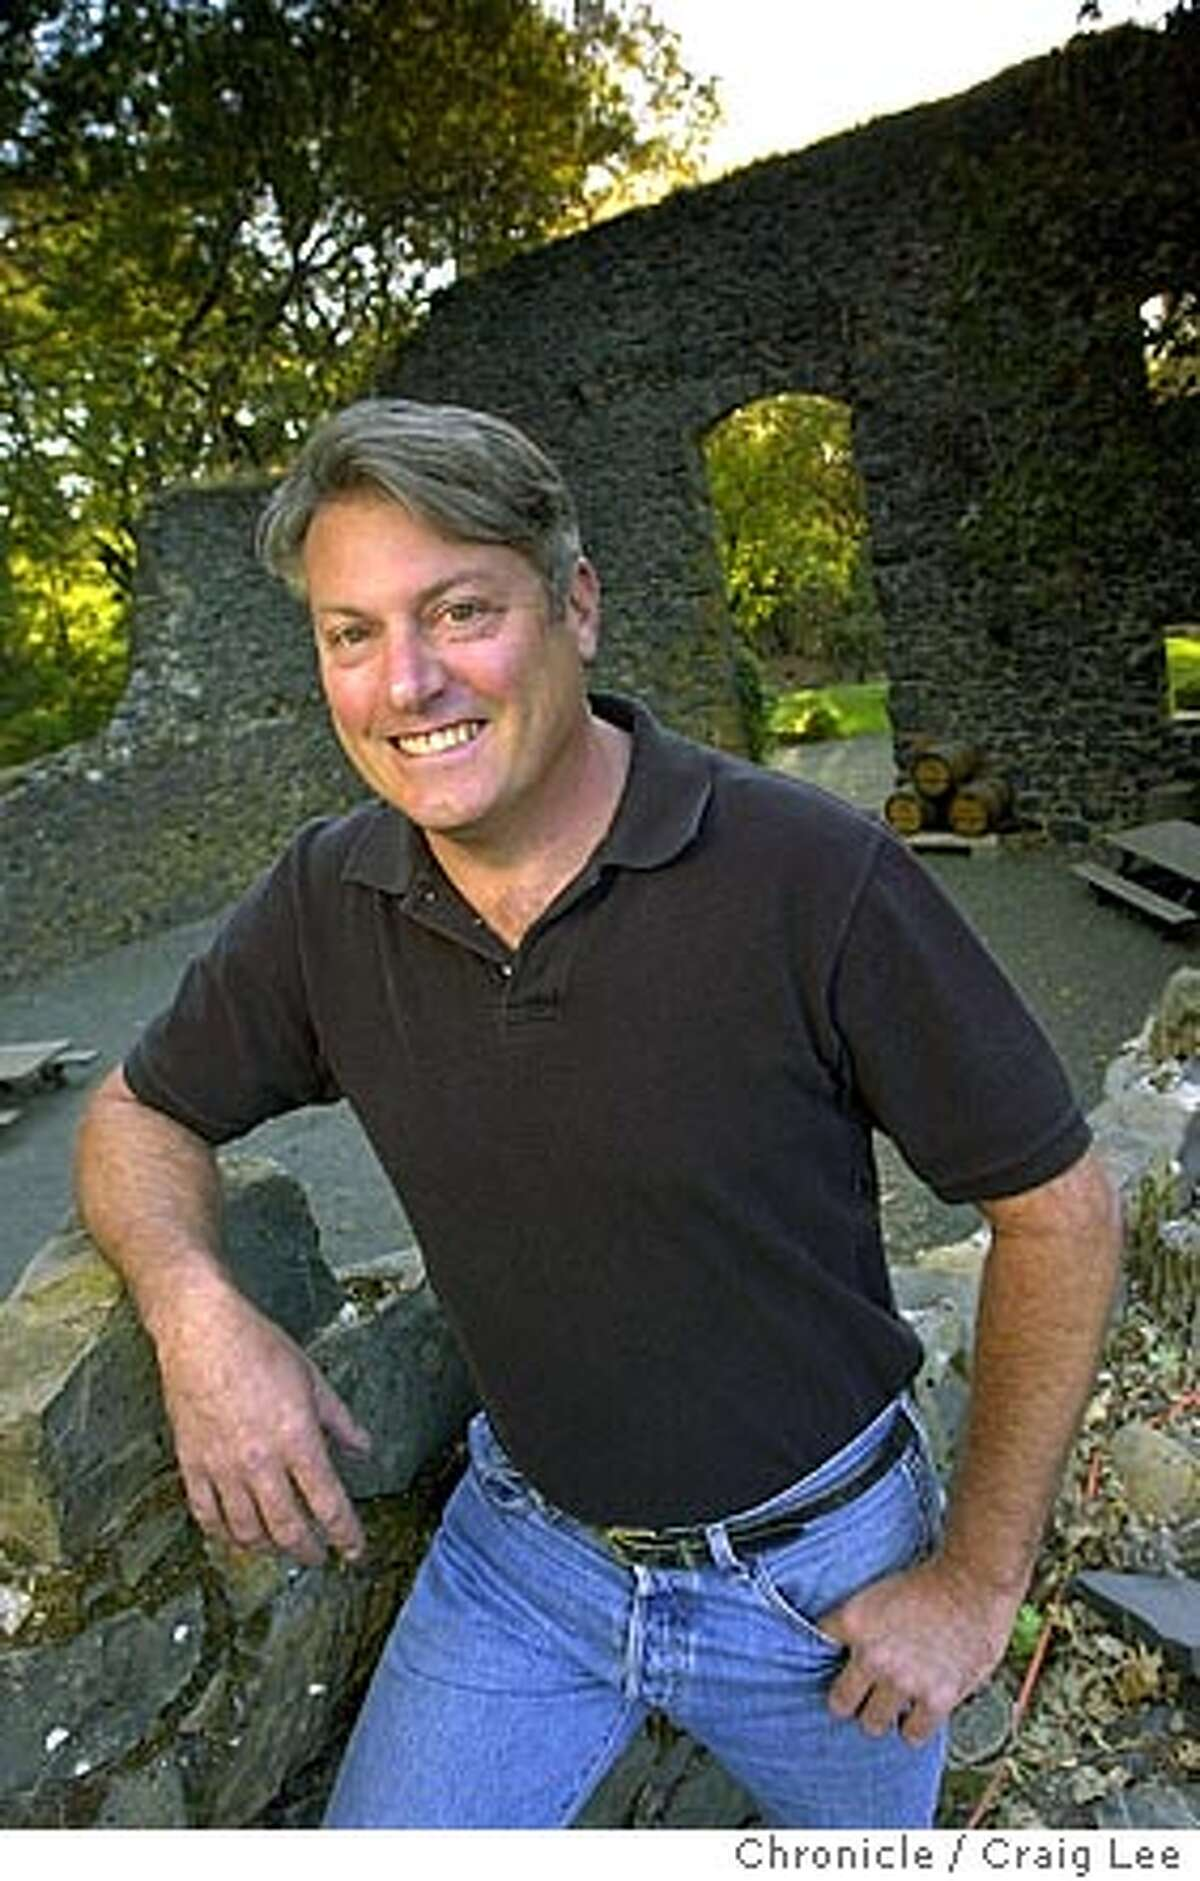 Winemaker to watch. Bob Foley, winemaker at Pride Mountain Vineyards in St. Helena. The ruins behind him are the ruins of the Summit Ranch Winery that was built in 1890 but burned down in the 1920's during the prohibition era. Event on 10/29/03 in St. Helena. CRAIG LEE / The Chronicle